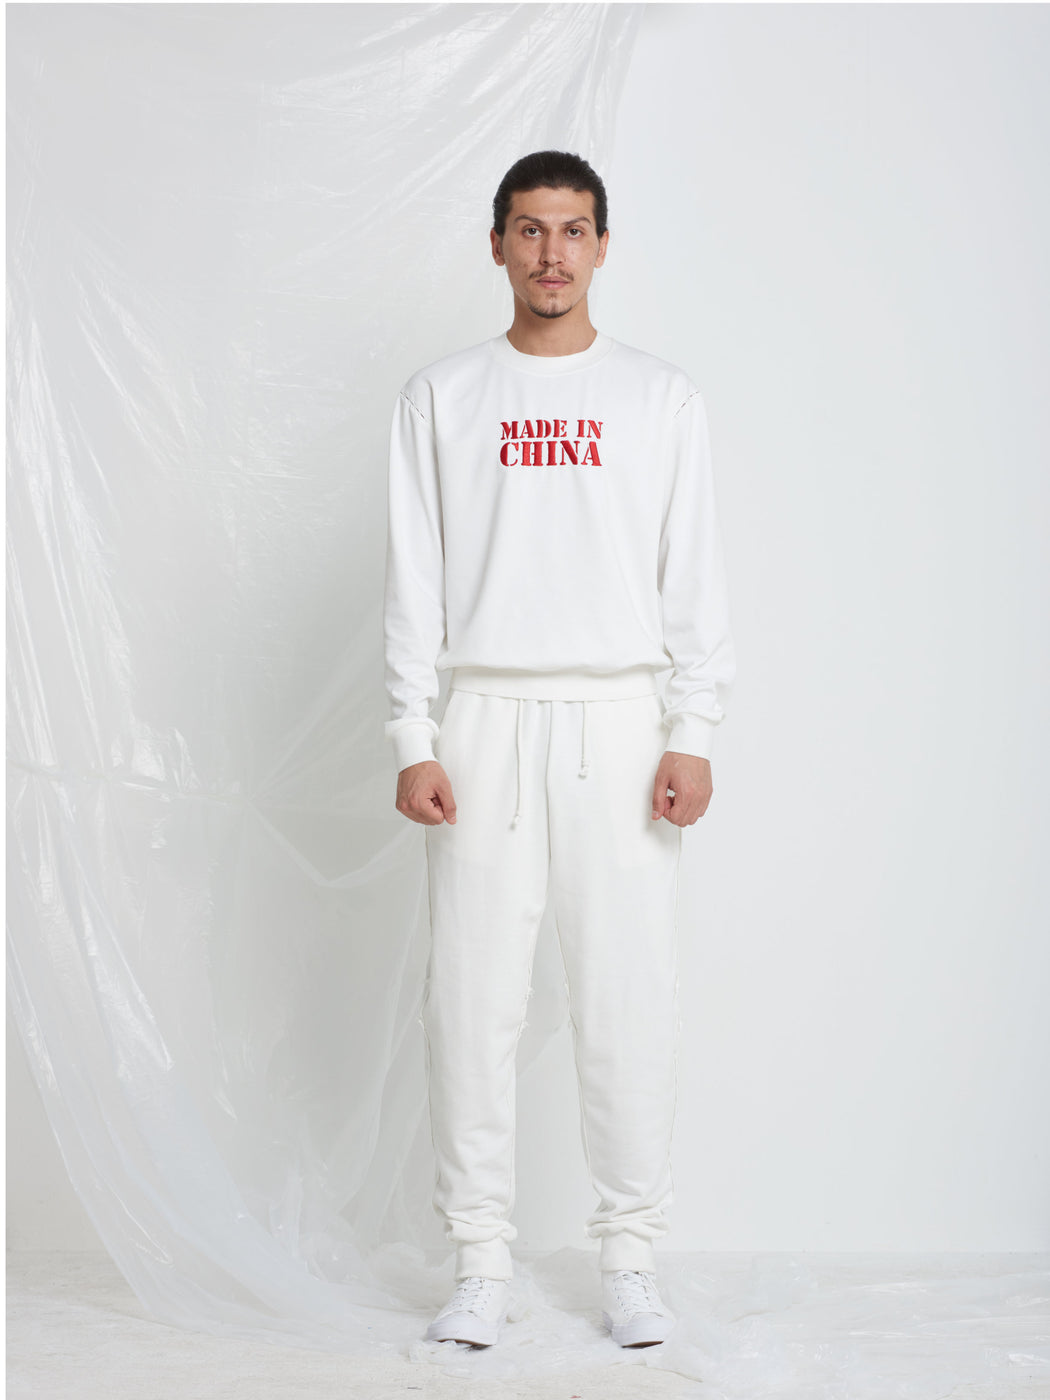 Feng Chen Wang MADE IN CHINA Sweatshirt BIGGERCODE